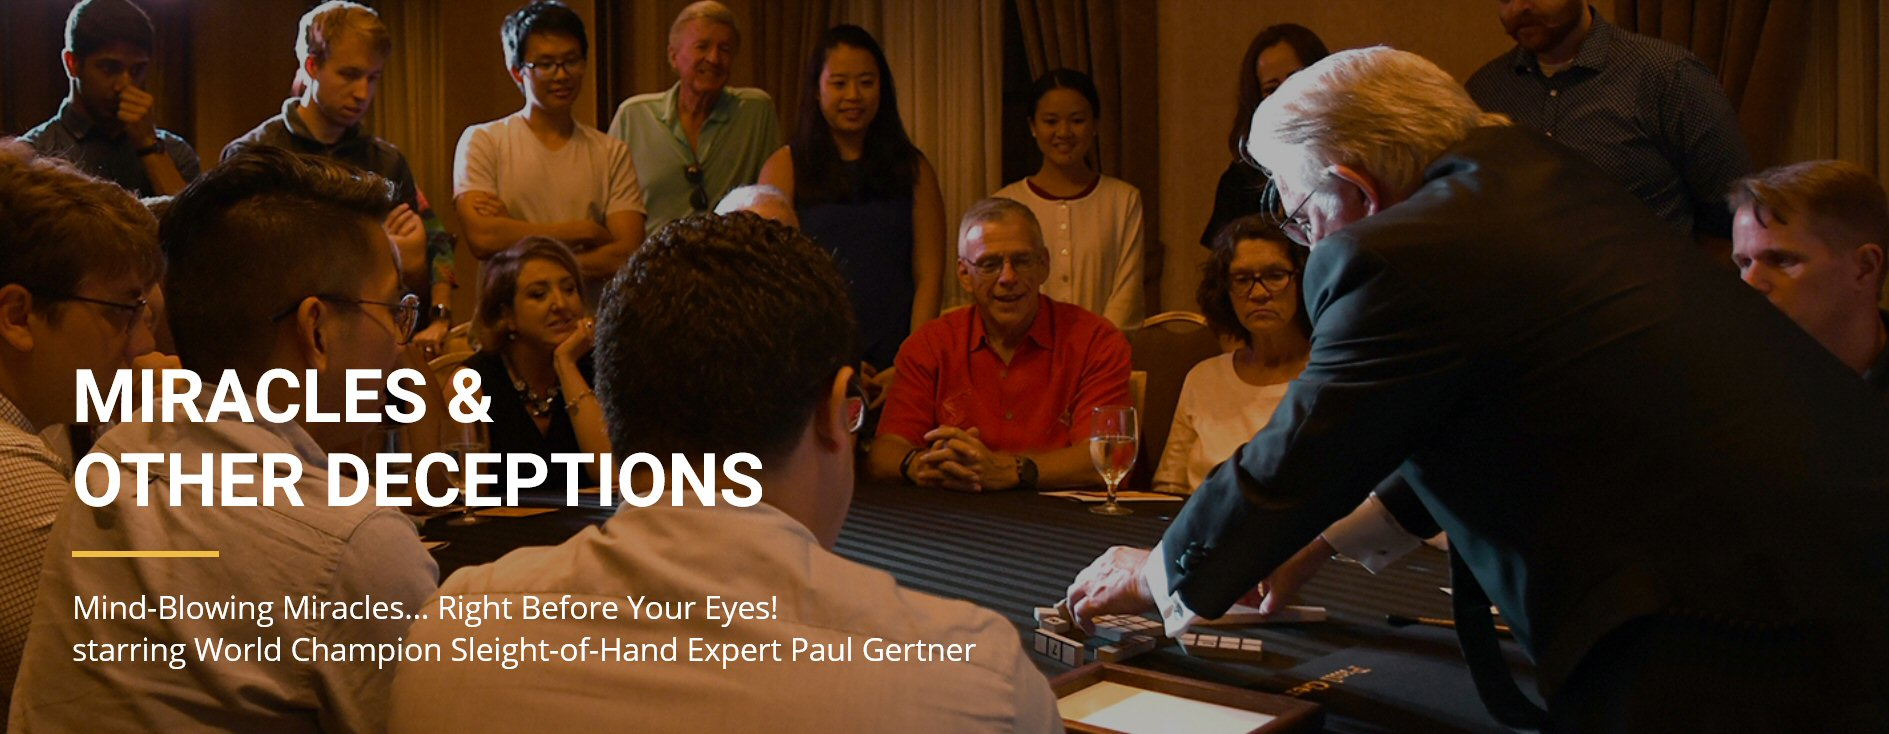 Click on the banner to visit the website with more details about Paul Gertner's show in Boston, Massachusetts.